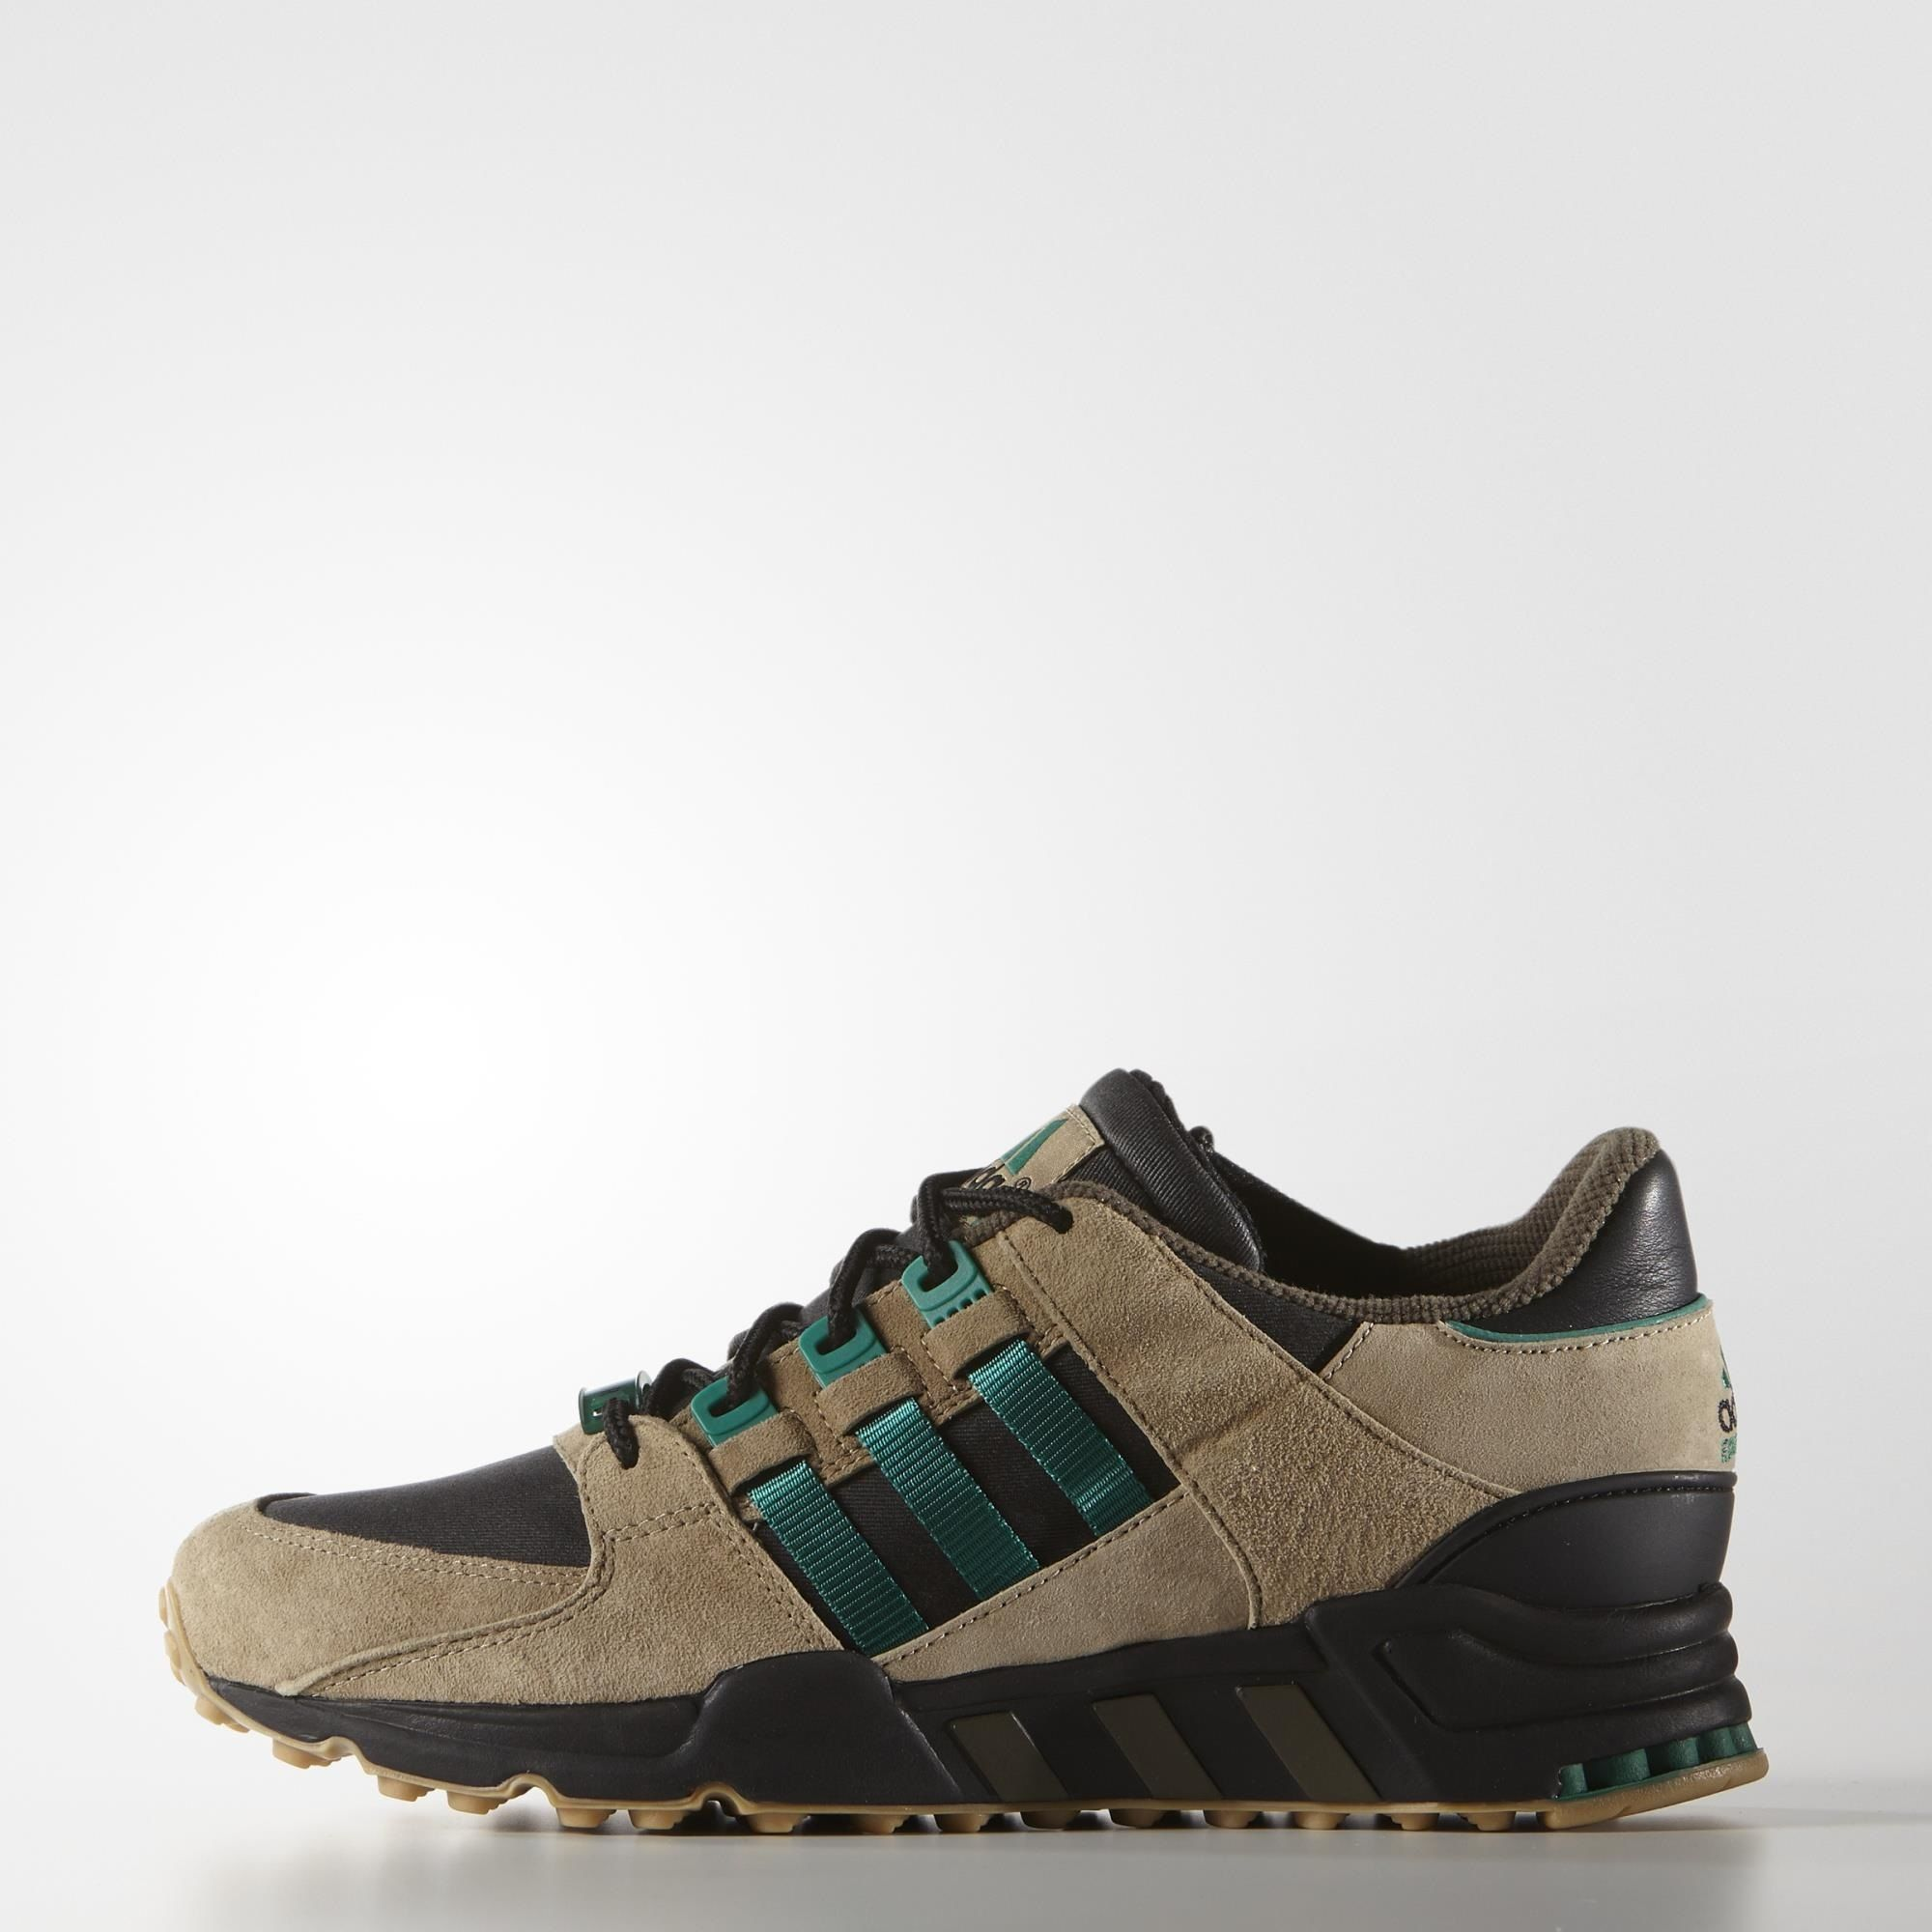 adidas Equipment Running Support 93 Shoes - Black | adidas